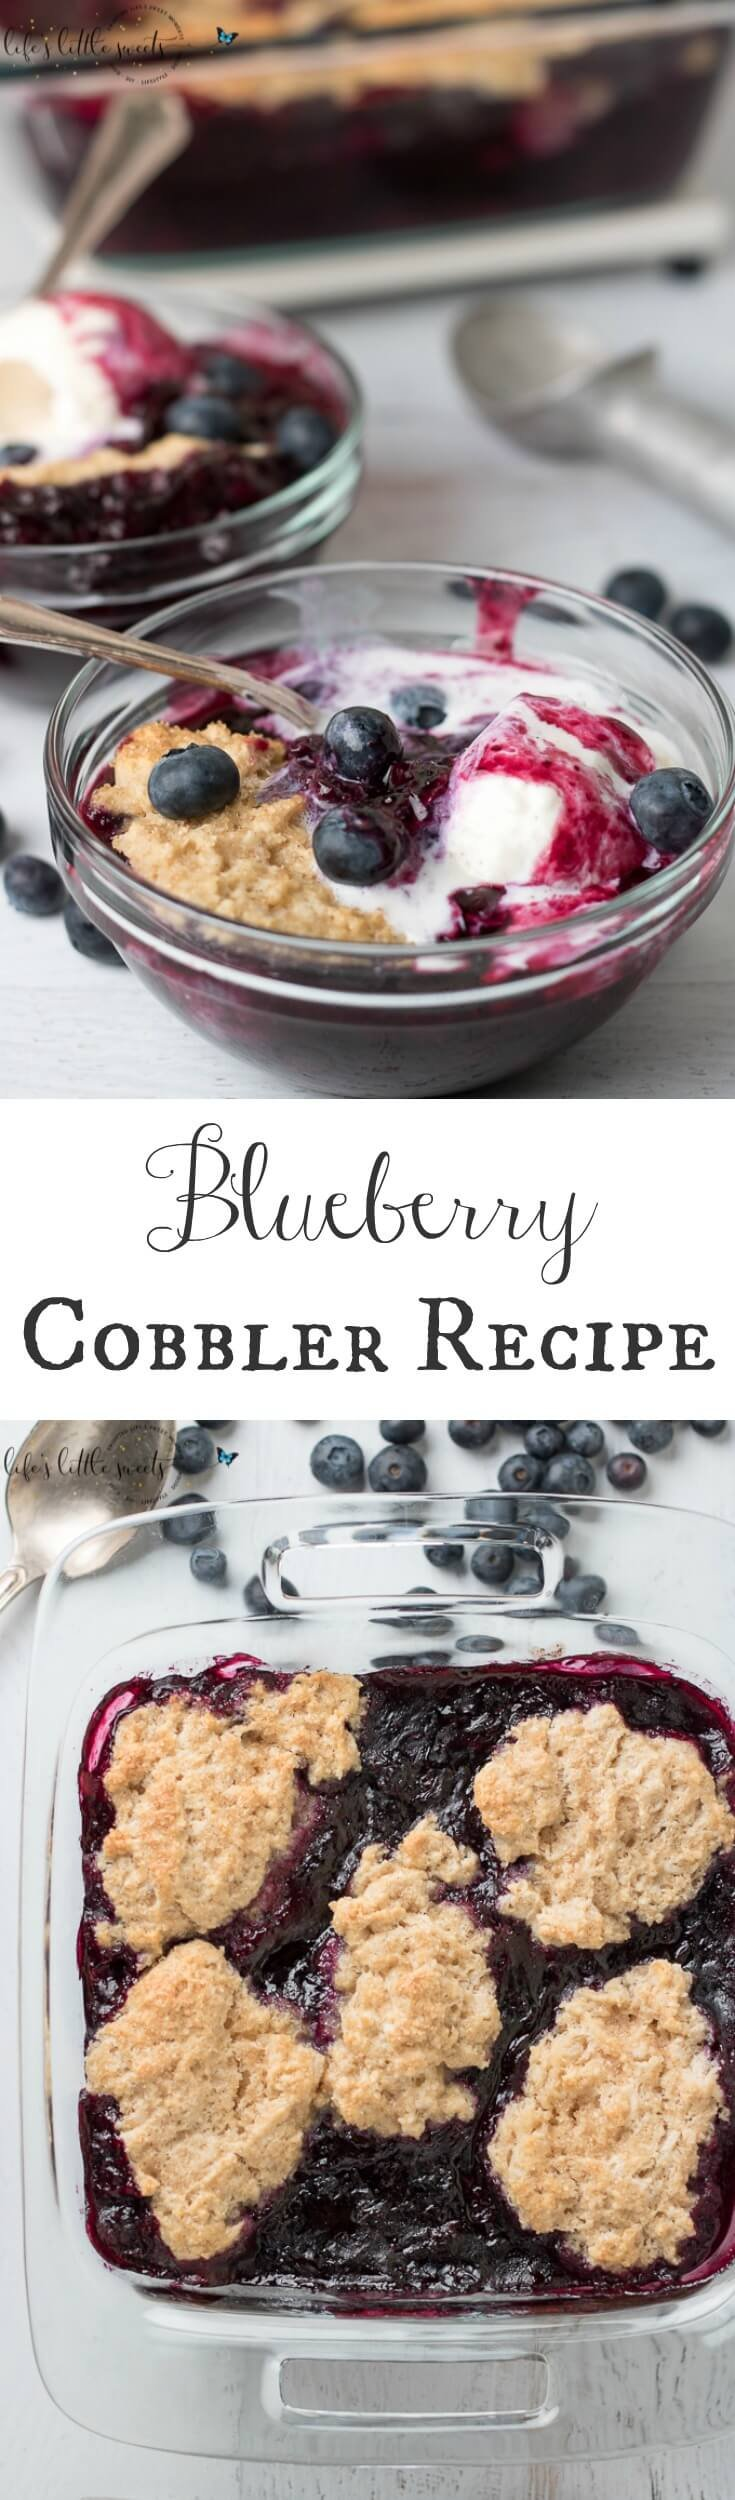 This Blueberry Cobbler has fresh, ripe blueberries with a crisp, biscuit on top. It's spiced with a secret ingredient to bring out the flavor of those blueberries. It's wonderful on it's own or served with vanilla ice cream or whipped cream!